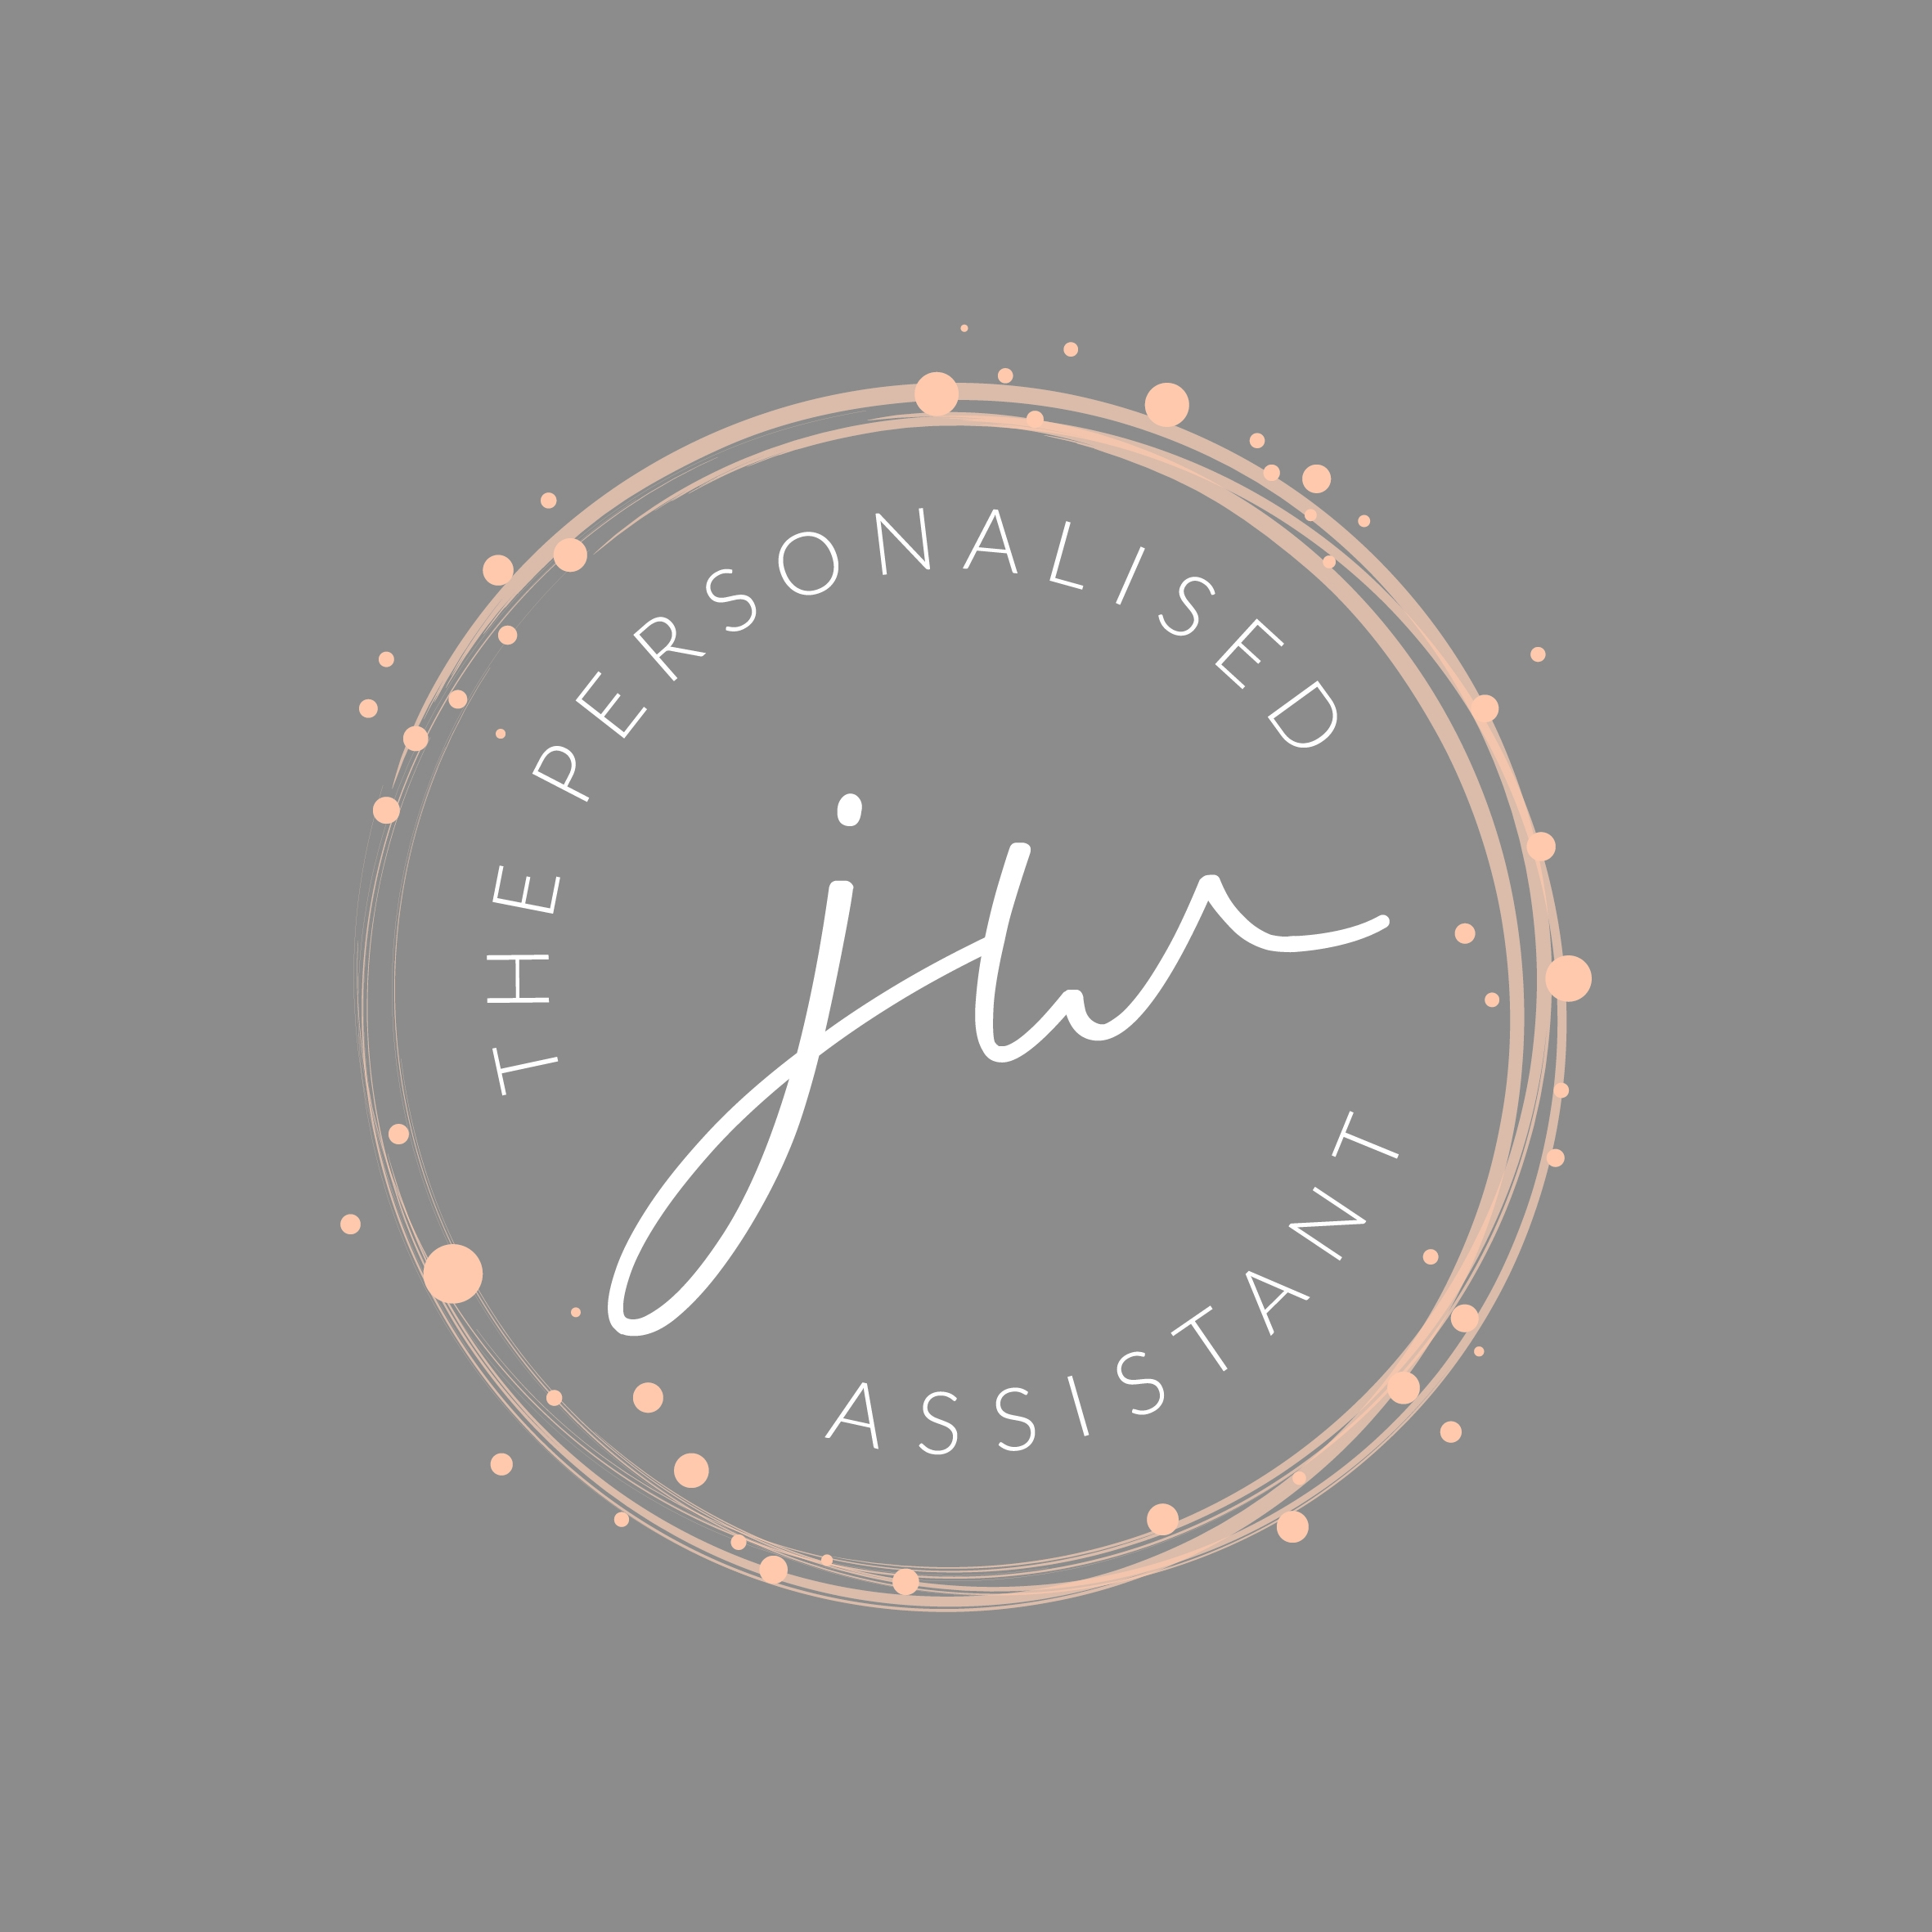 The Personalised Assistant